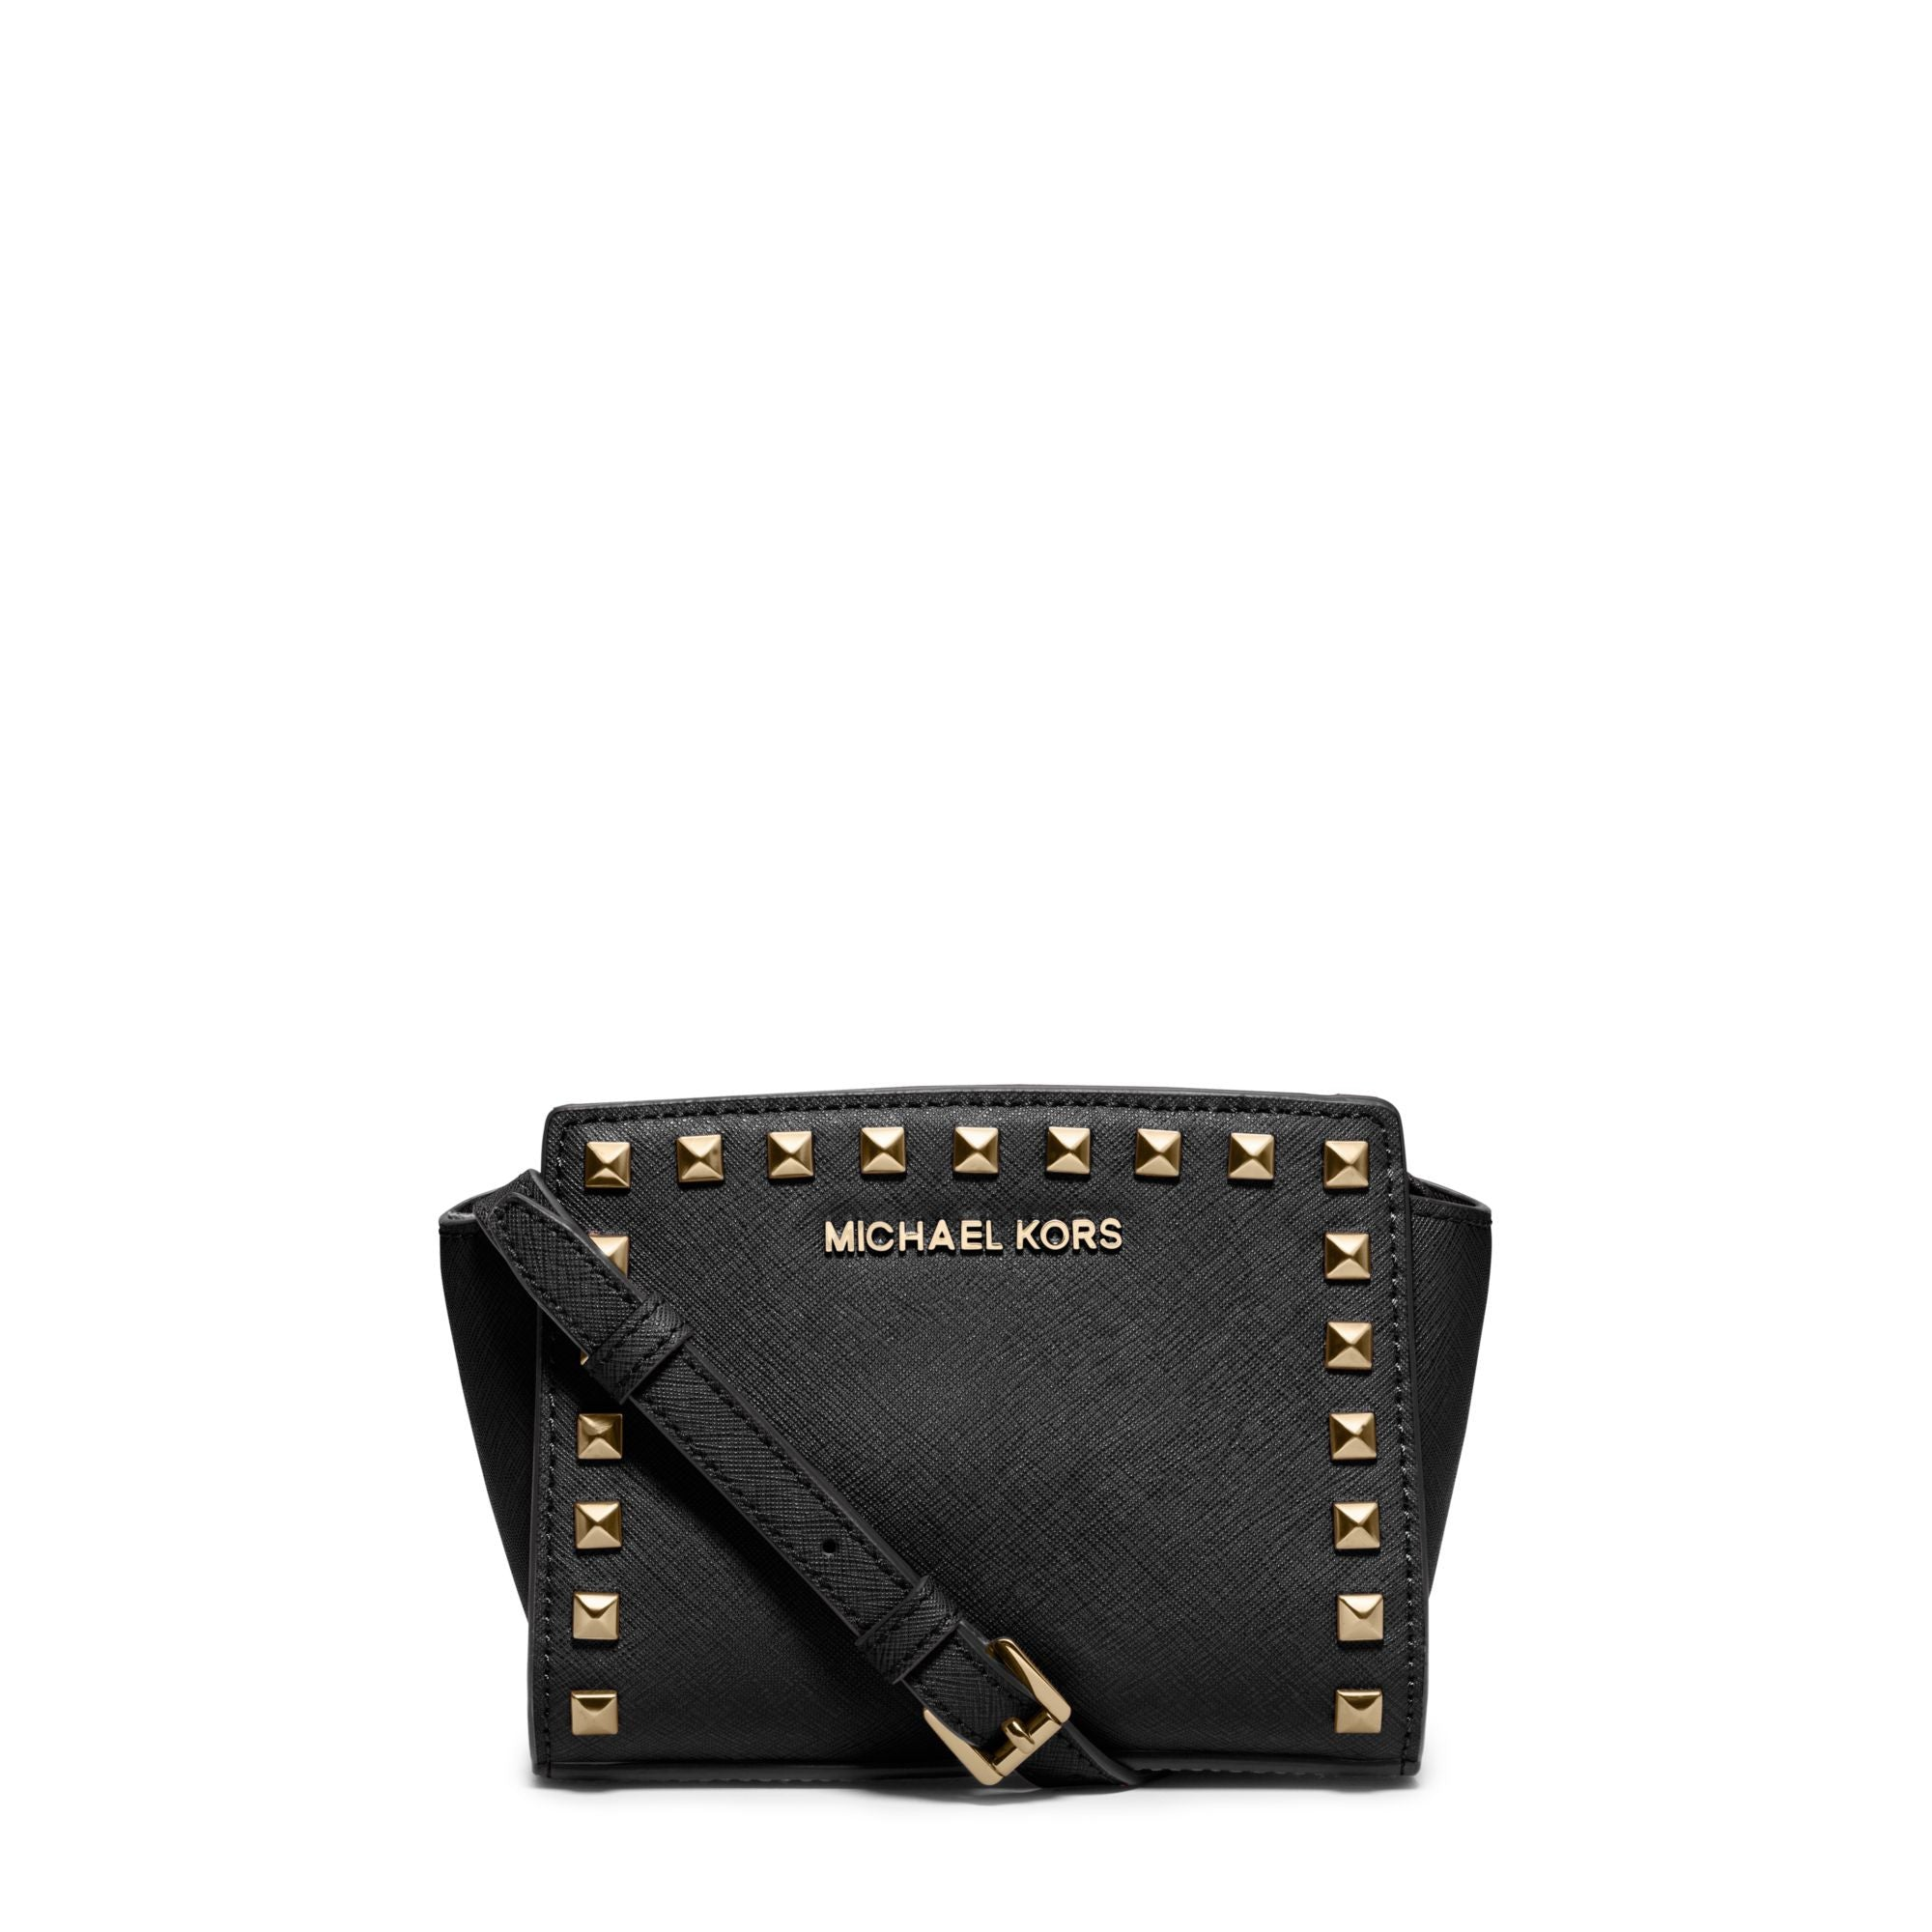 5e68b79f9faf68 michael-kors-black-selma-mini-studded-leather -crossbody-product-1-775318011-normal.jpeg?v=1510177137